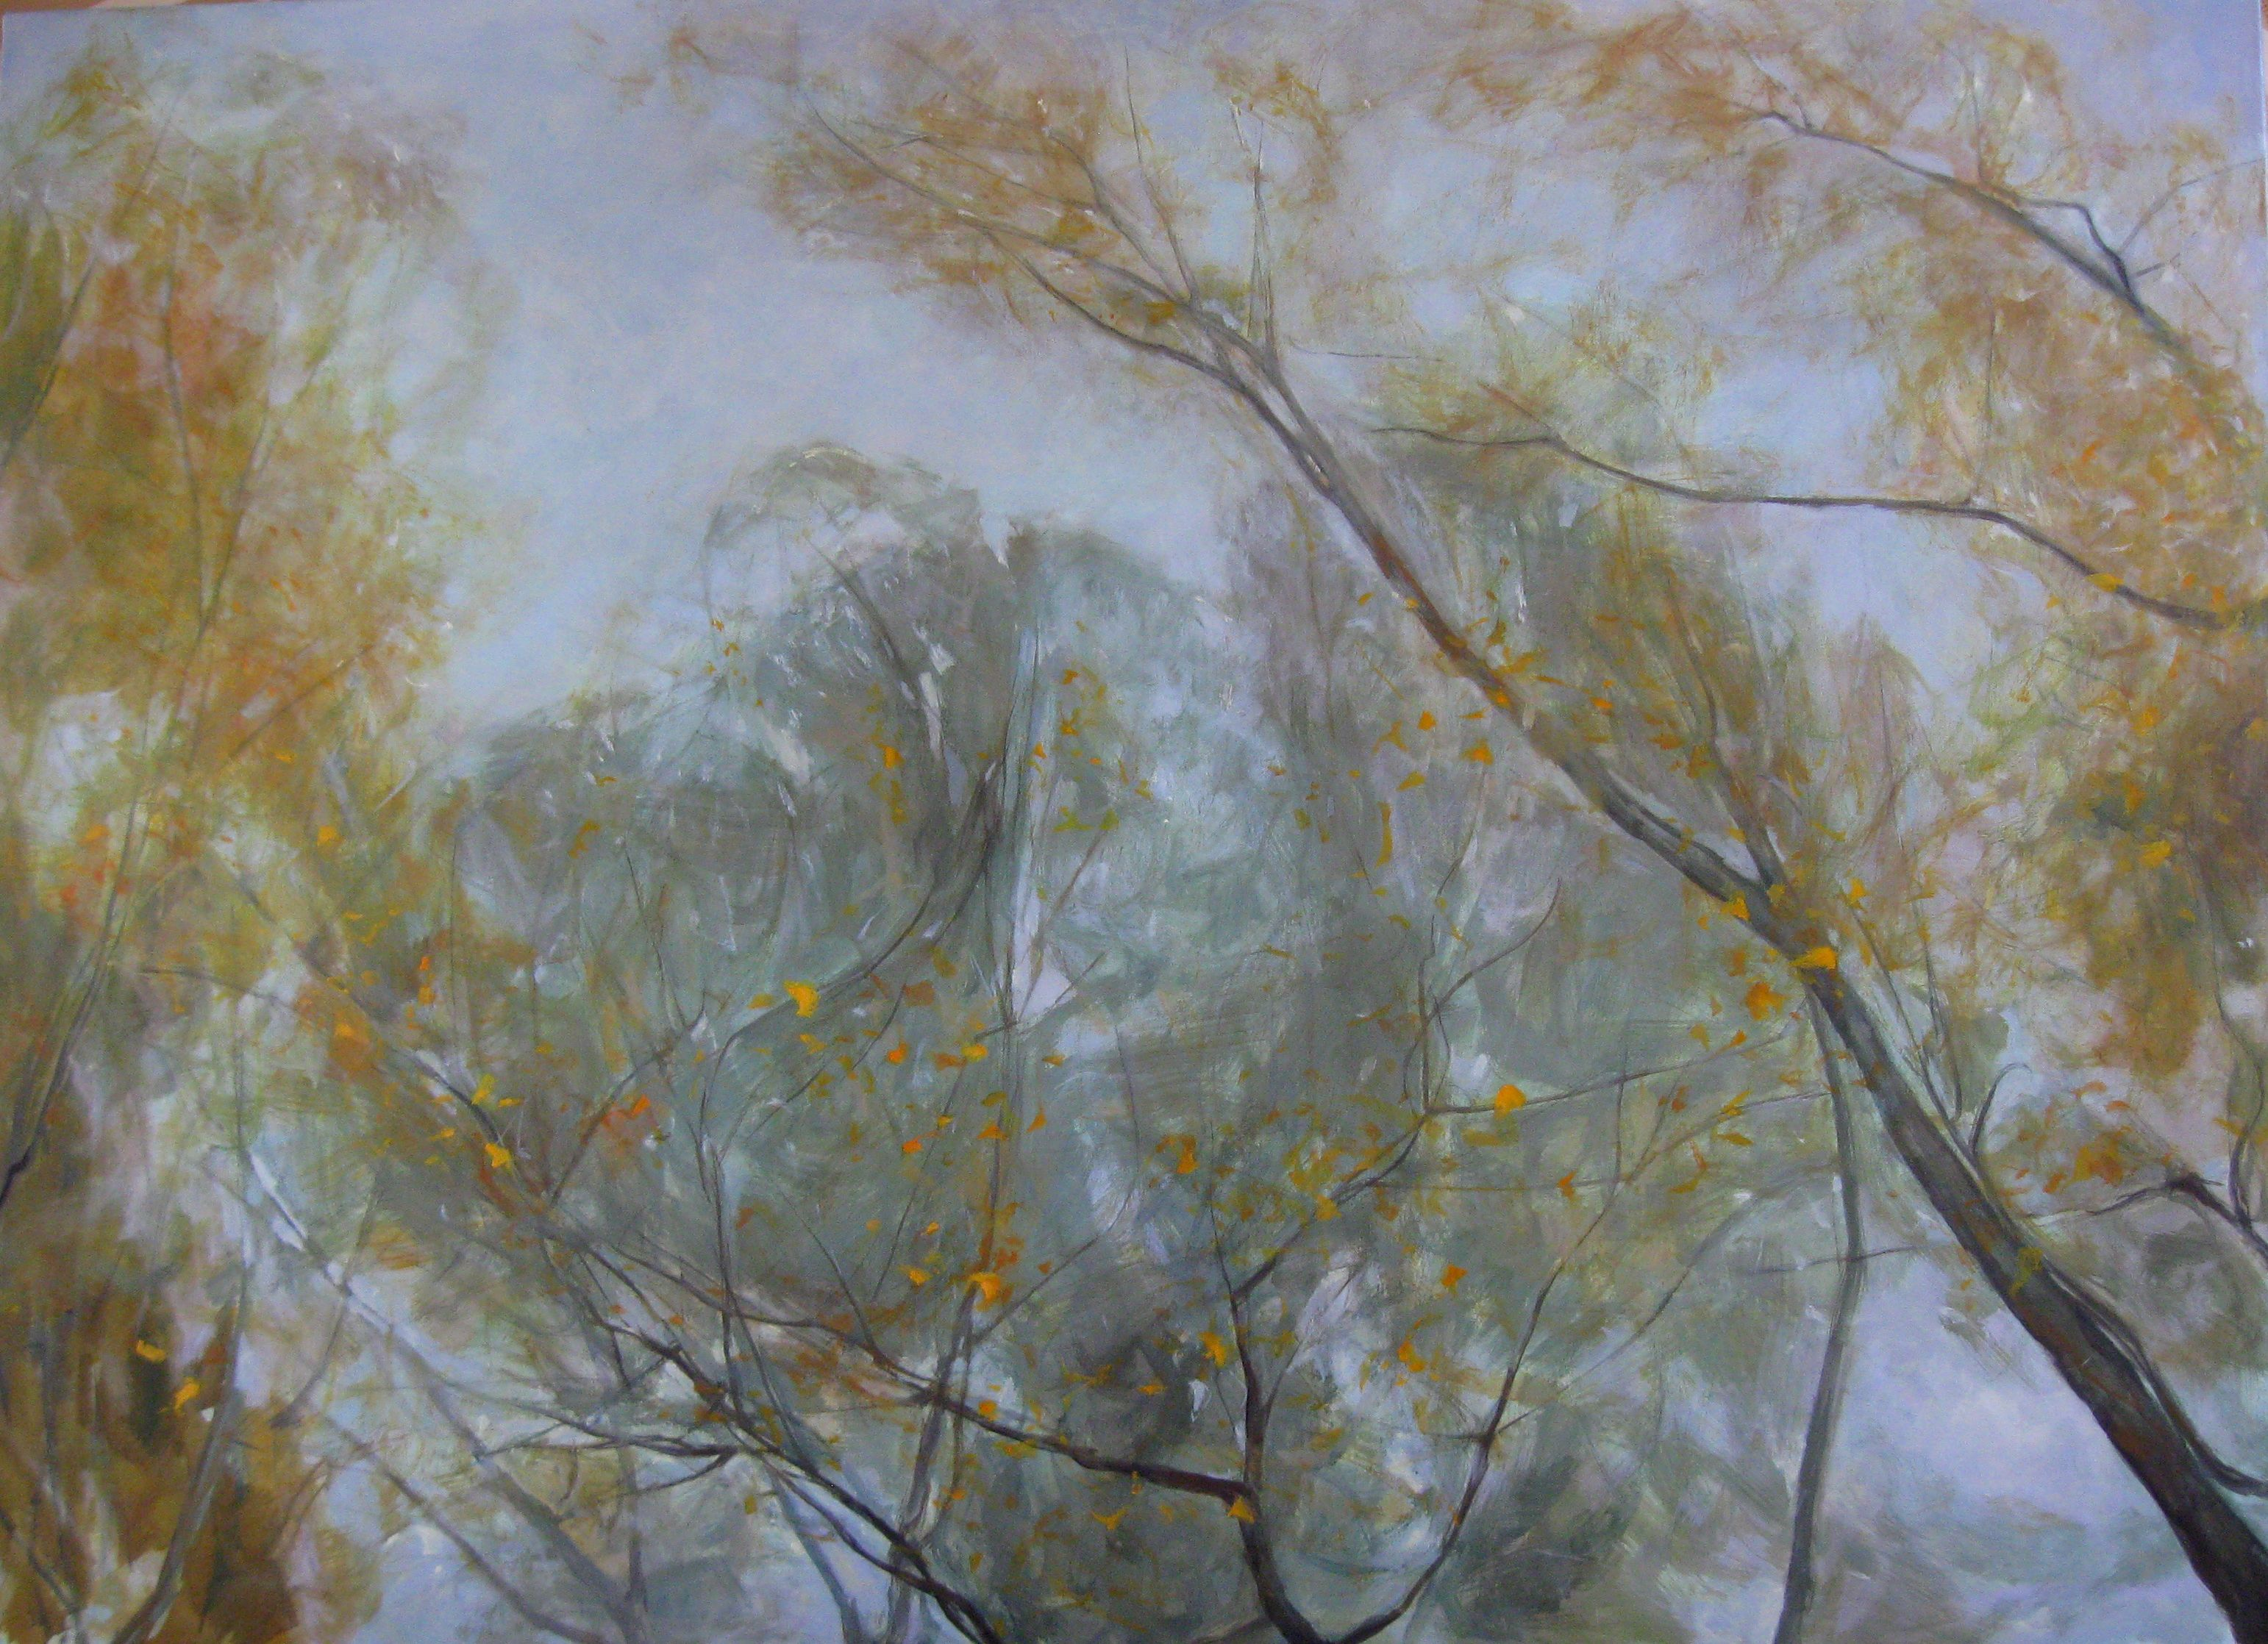 Aspens' and Willows' Branches in Autumn